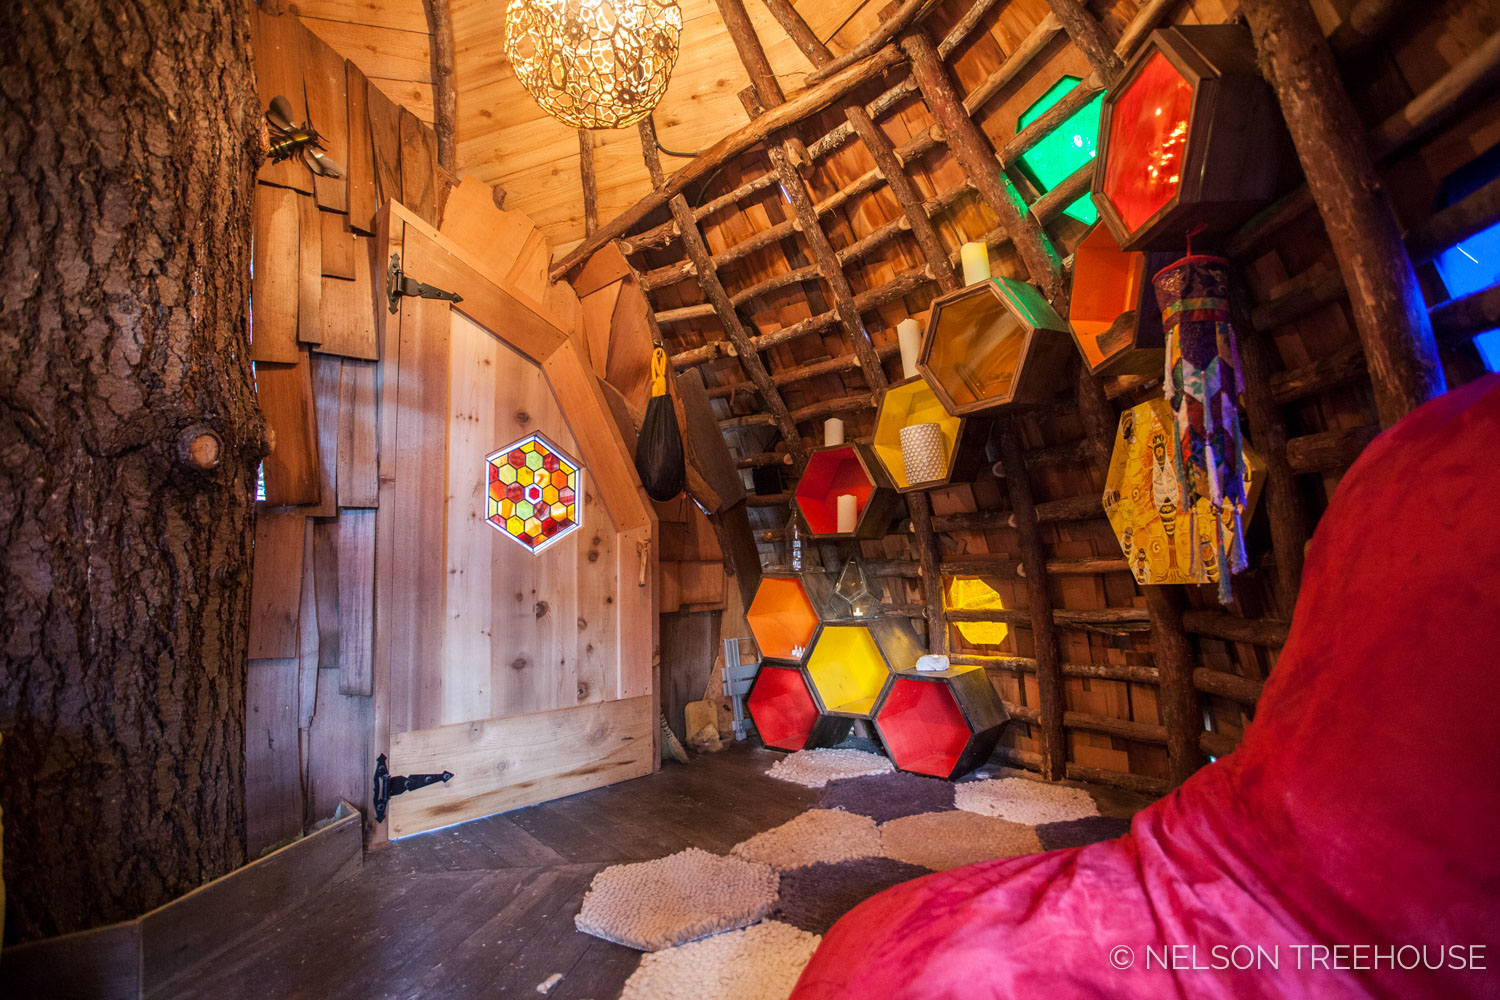 Inside the Beehive Treehouse